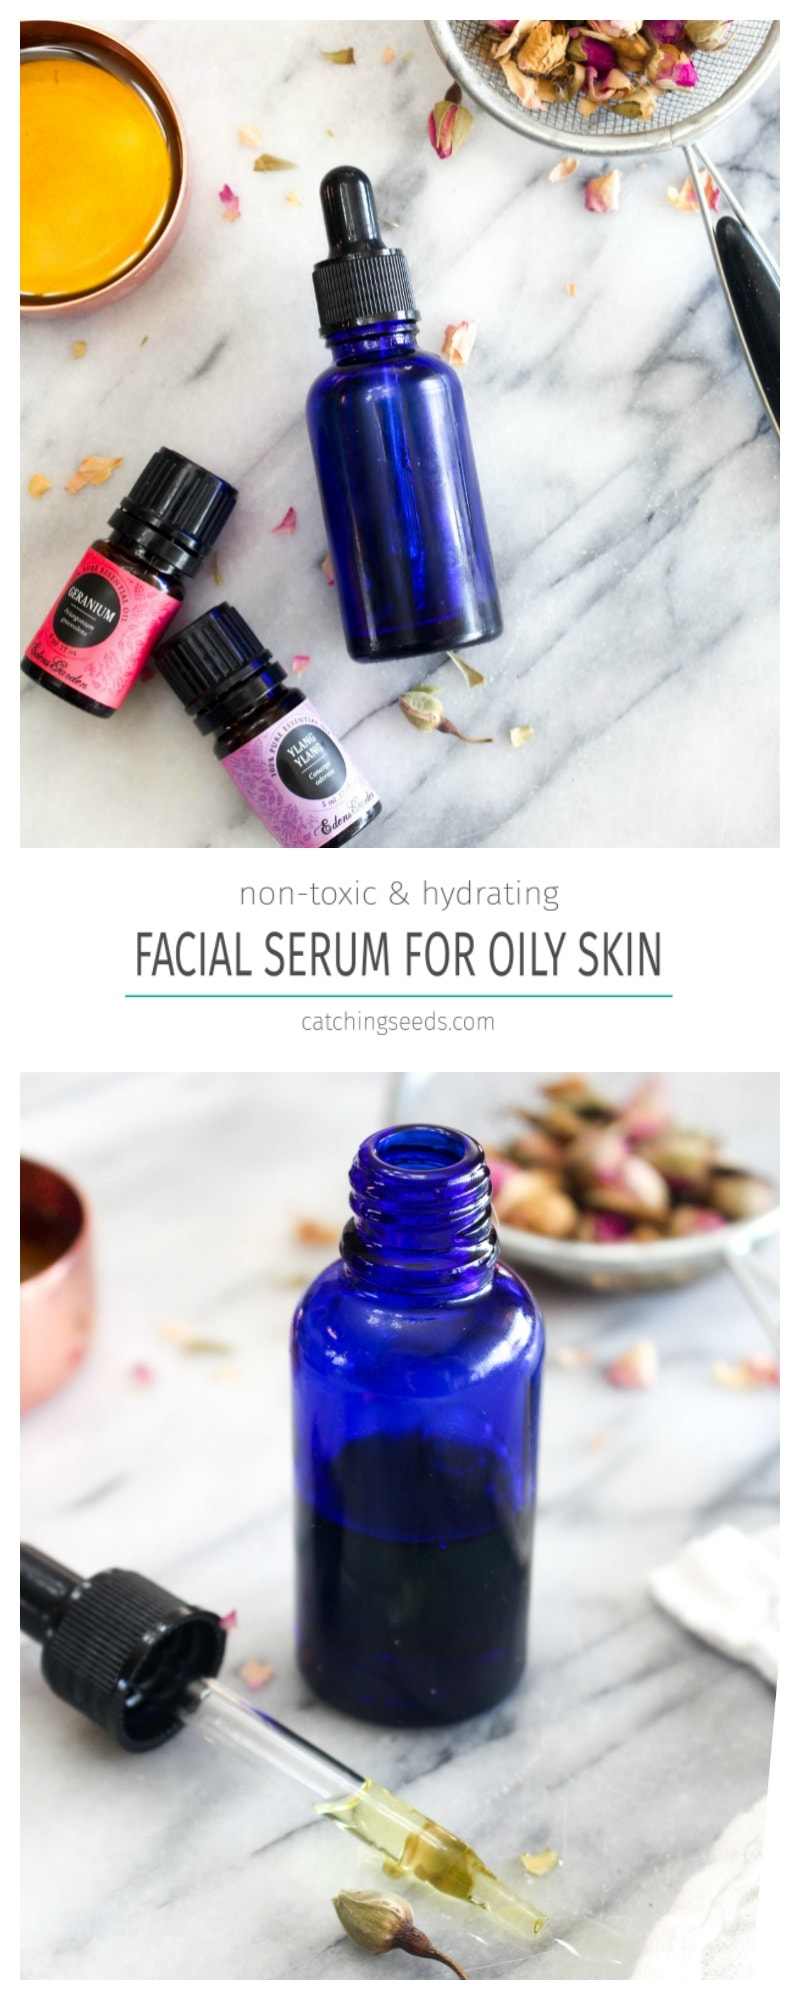 Hydrating Face Serum for Oily Skin is an antioxidant charged facial moisturizer! This easy recipe uses simple non toxic beauty ingredients for glowing skin. | CatchingSeeds.com